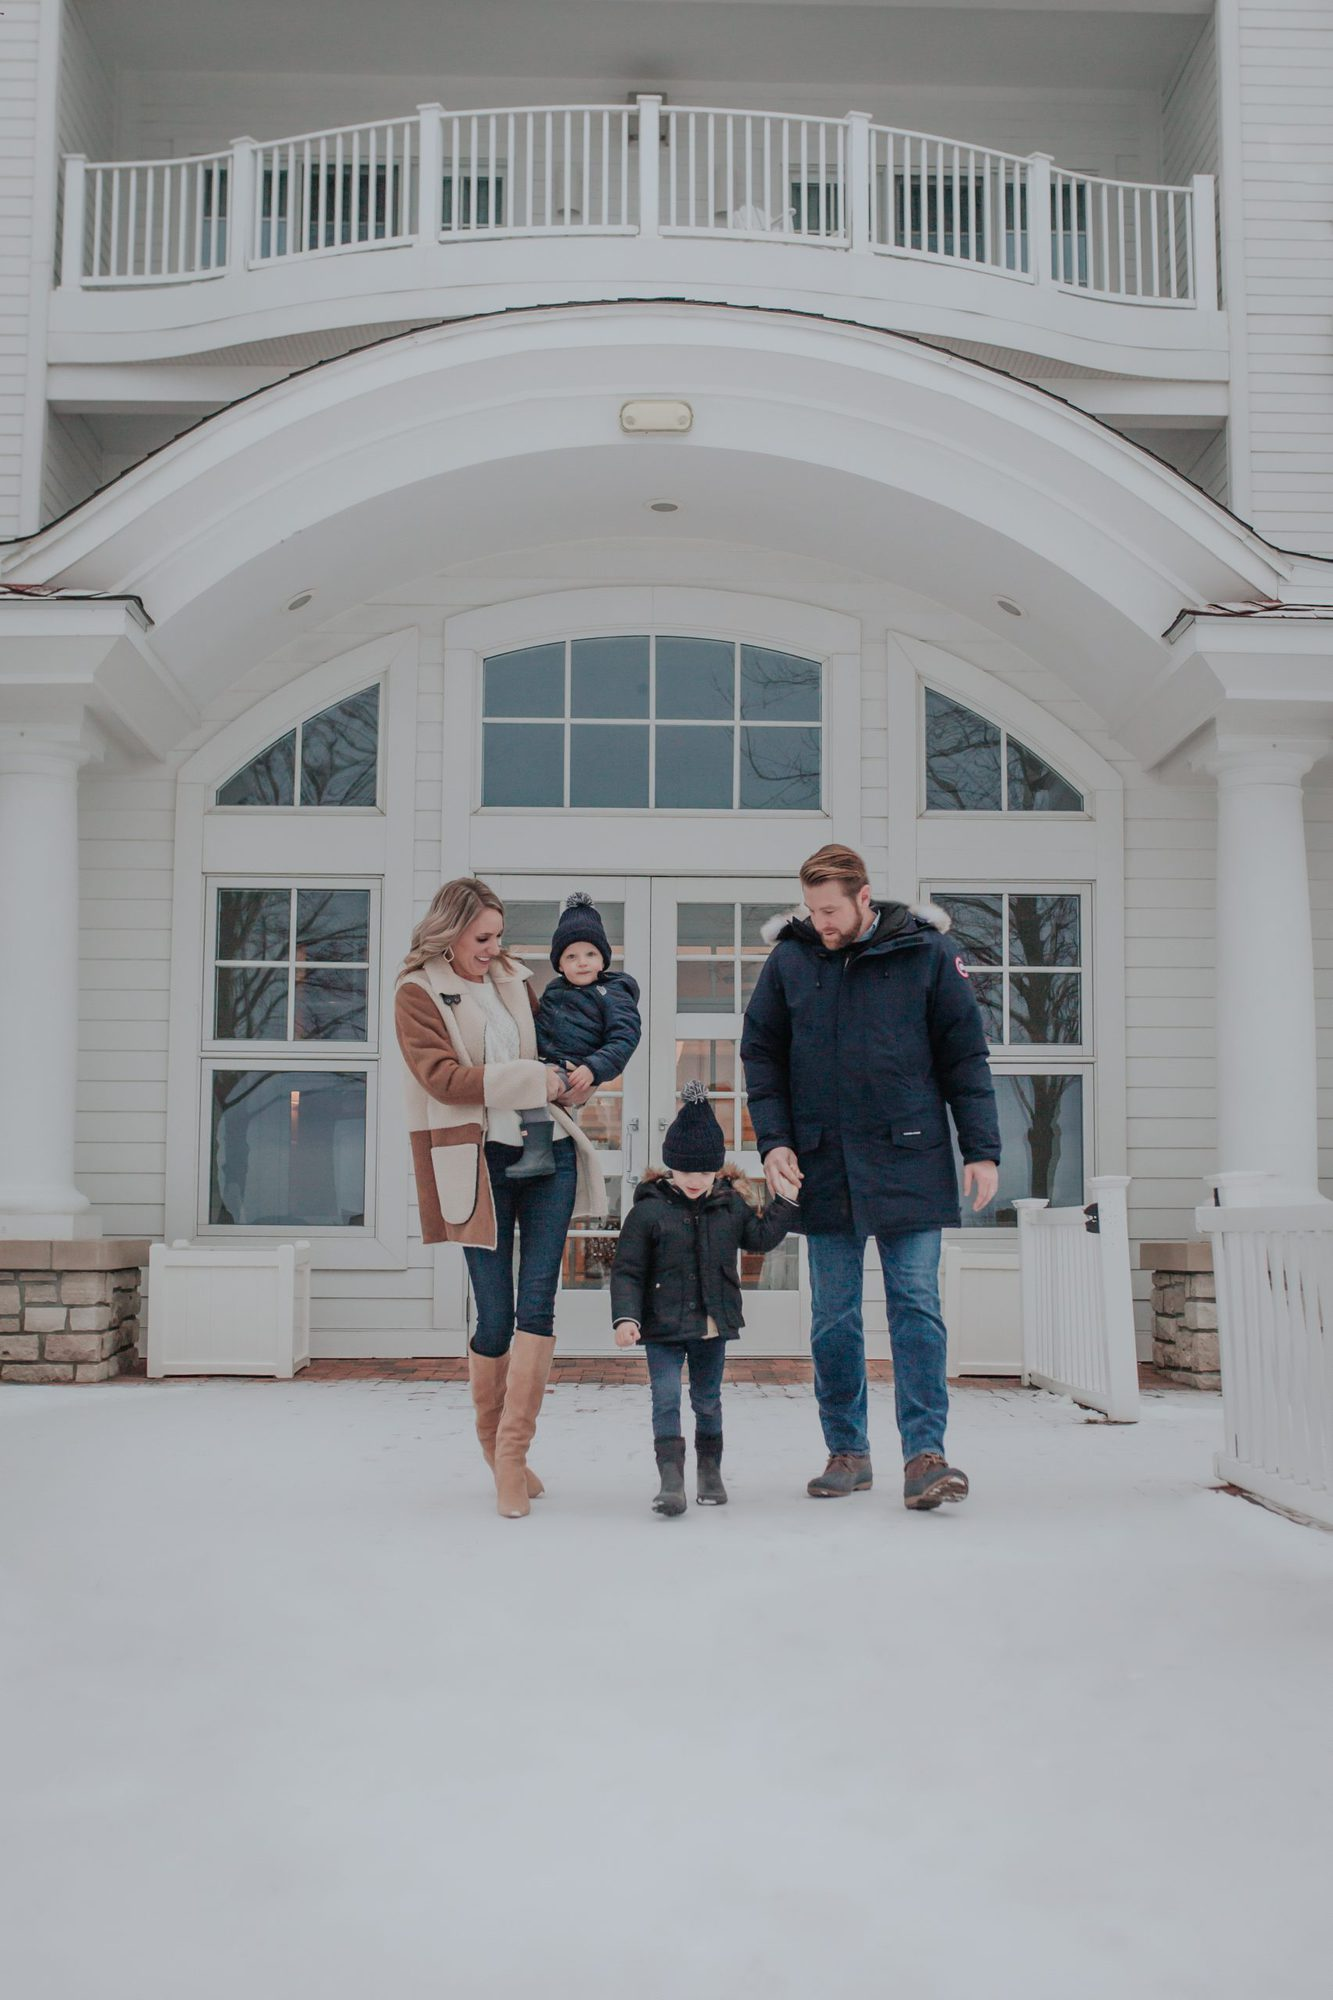 family walking outside in winter at Bay Harbor |Inn at Bay Harbor by popular Michigan travel blog, The House of Navy: image of a family walking outside at the Inn at Bay Harbor.